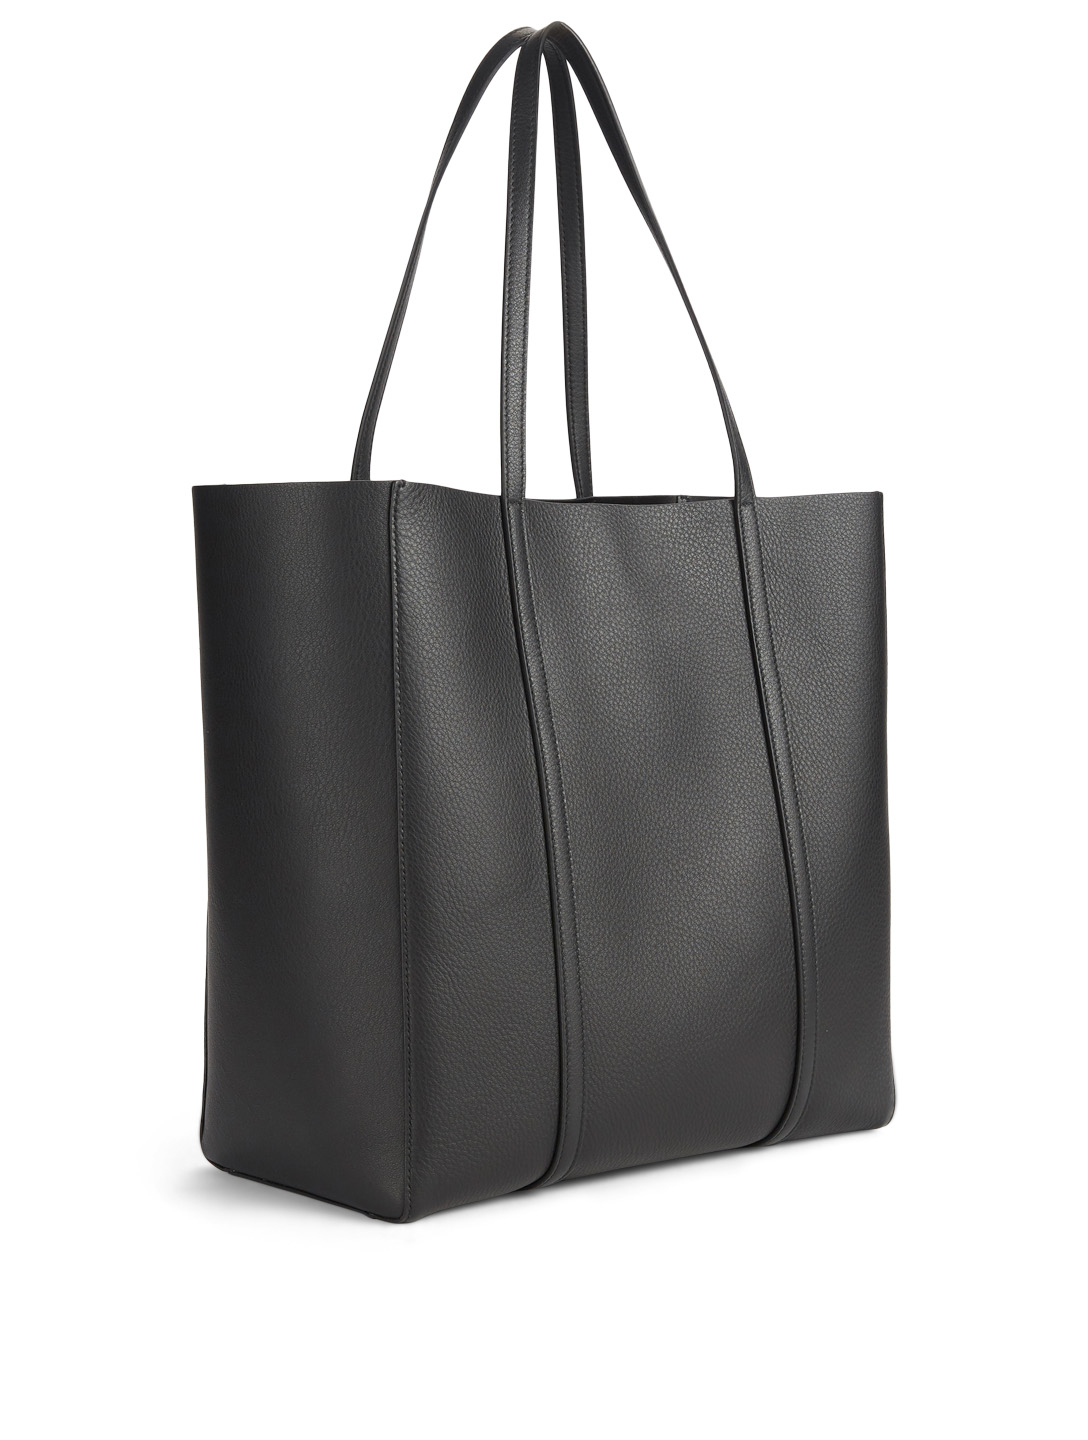 BALENCIAGA Small Everyday Leather Tote Bag Women's Black